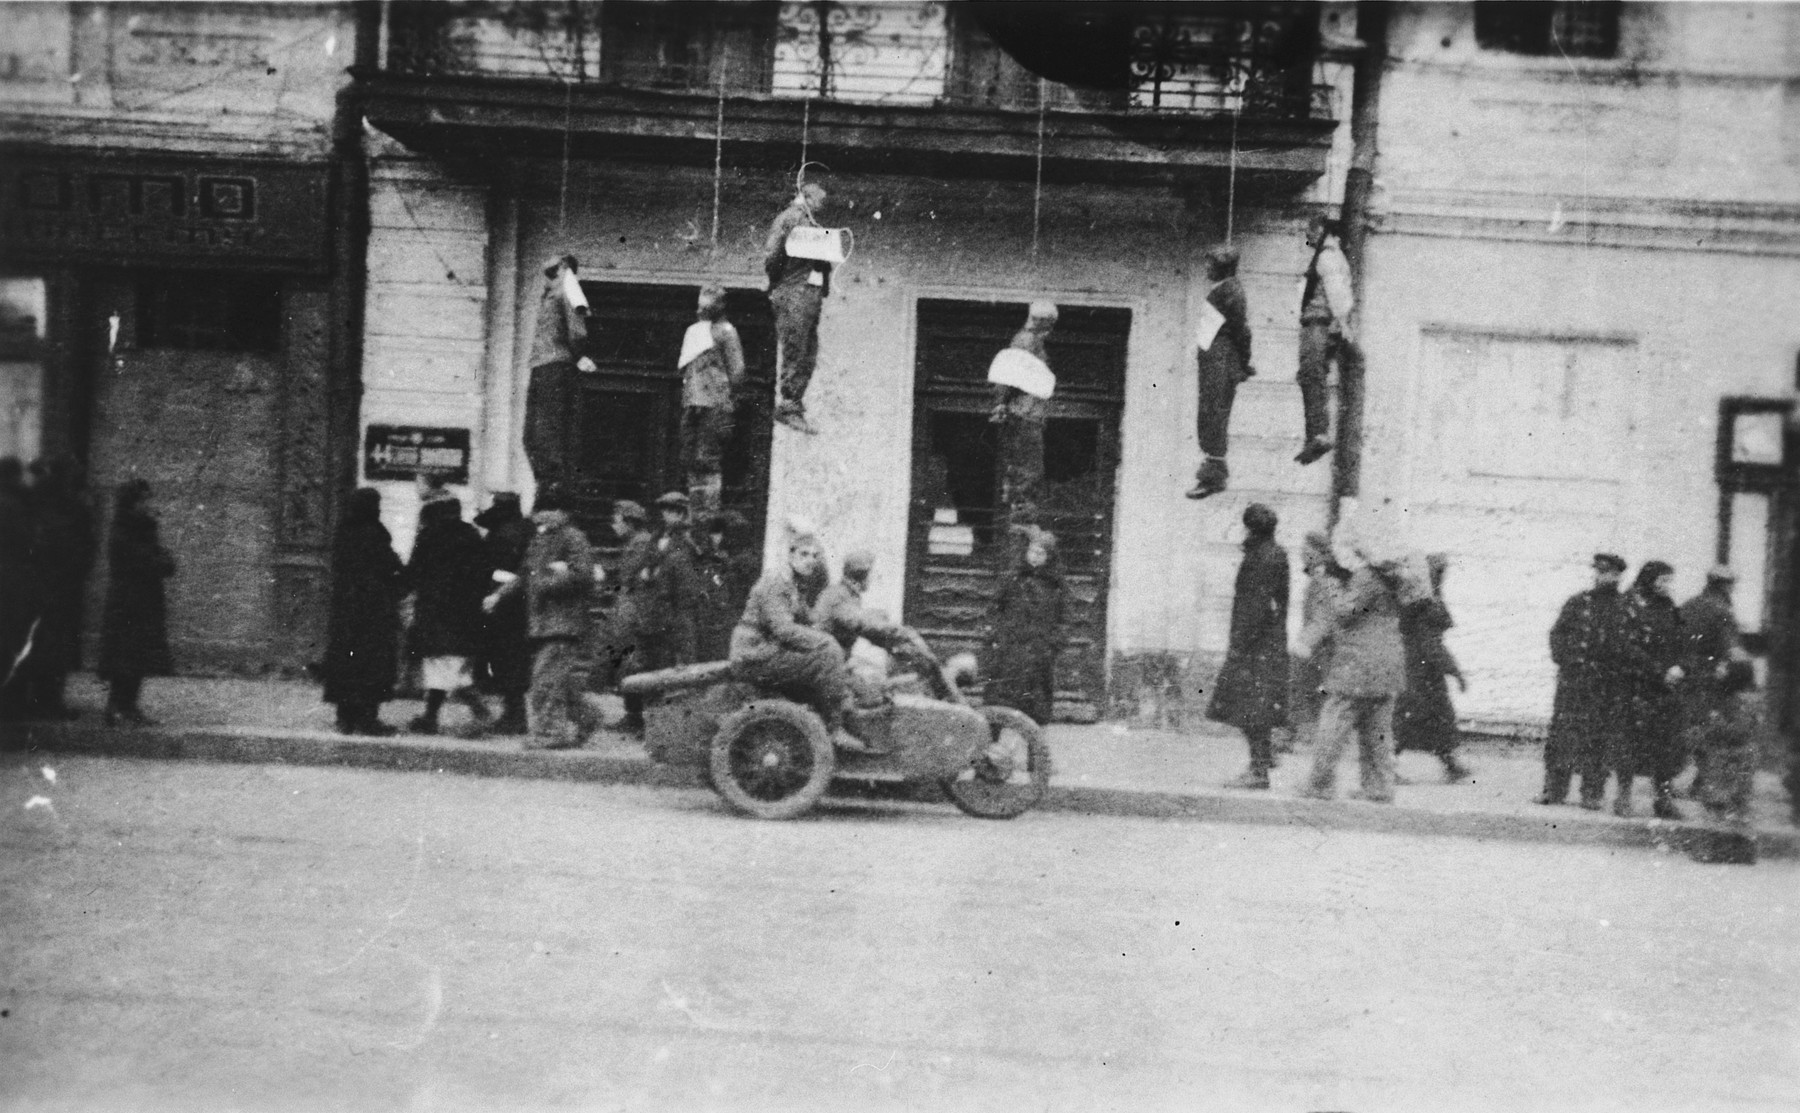 """The bodies of six civilians hang from the balcony of a school on Sverdlov Street where they were executed by German troops of the 50th Army Corps.  The signs around their necks read """"punishment for blowing up an explosives storehouse.""""  The city of Kharkov was captured by the German Sixth Army at the end of October 1941.  Just prior to its fall, the commander of the Sixth Army, General Walther von Reichenau, ordered the commanding officer of the 50th Army Corps to act mercilessly against """"hostile elements,"""" particularly Jews and Bolsheviks.  These segments of the local population were to be subject to collective measures in reprisal for attacks on German personnel or materiel.  Saboteurs in particular were to be publicly hanged as examples.  Thus instructed, the commander of the 50th AK acted vigorously against the local population after a store of explosives blew up in November.  Male Jews, especially, were the target of the wave of arrests and hangings that followed the explosion.  Altogether 200 """"Communists"""" were either shot or hanged and 1000 hostages were taken by the men of the 50th Army Corps."""